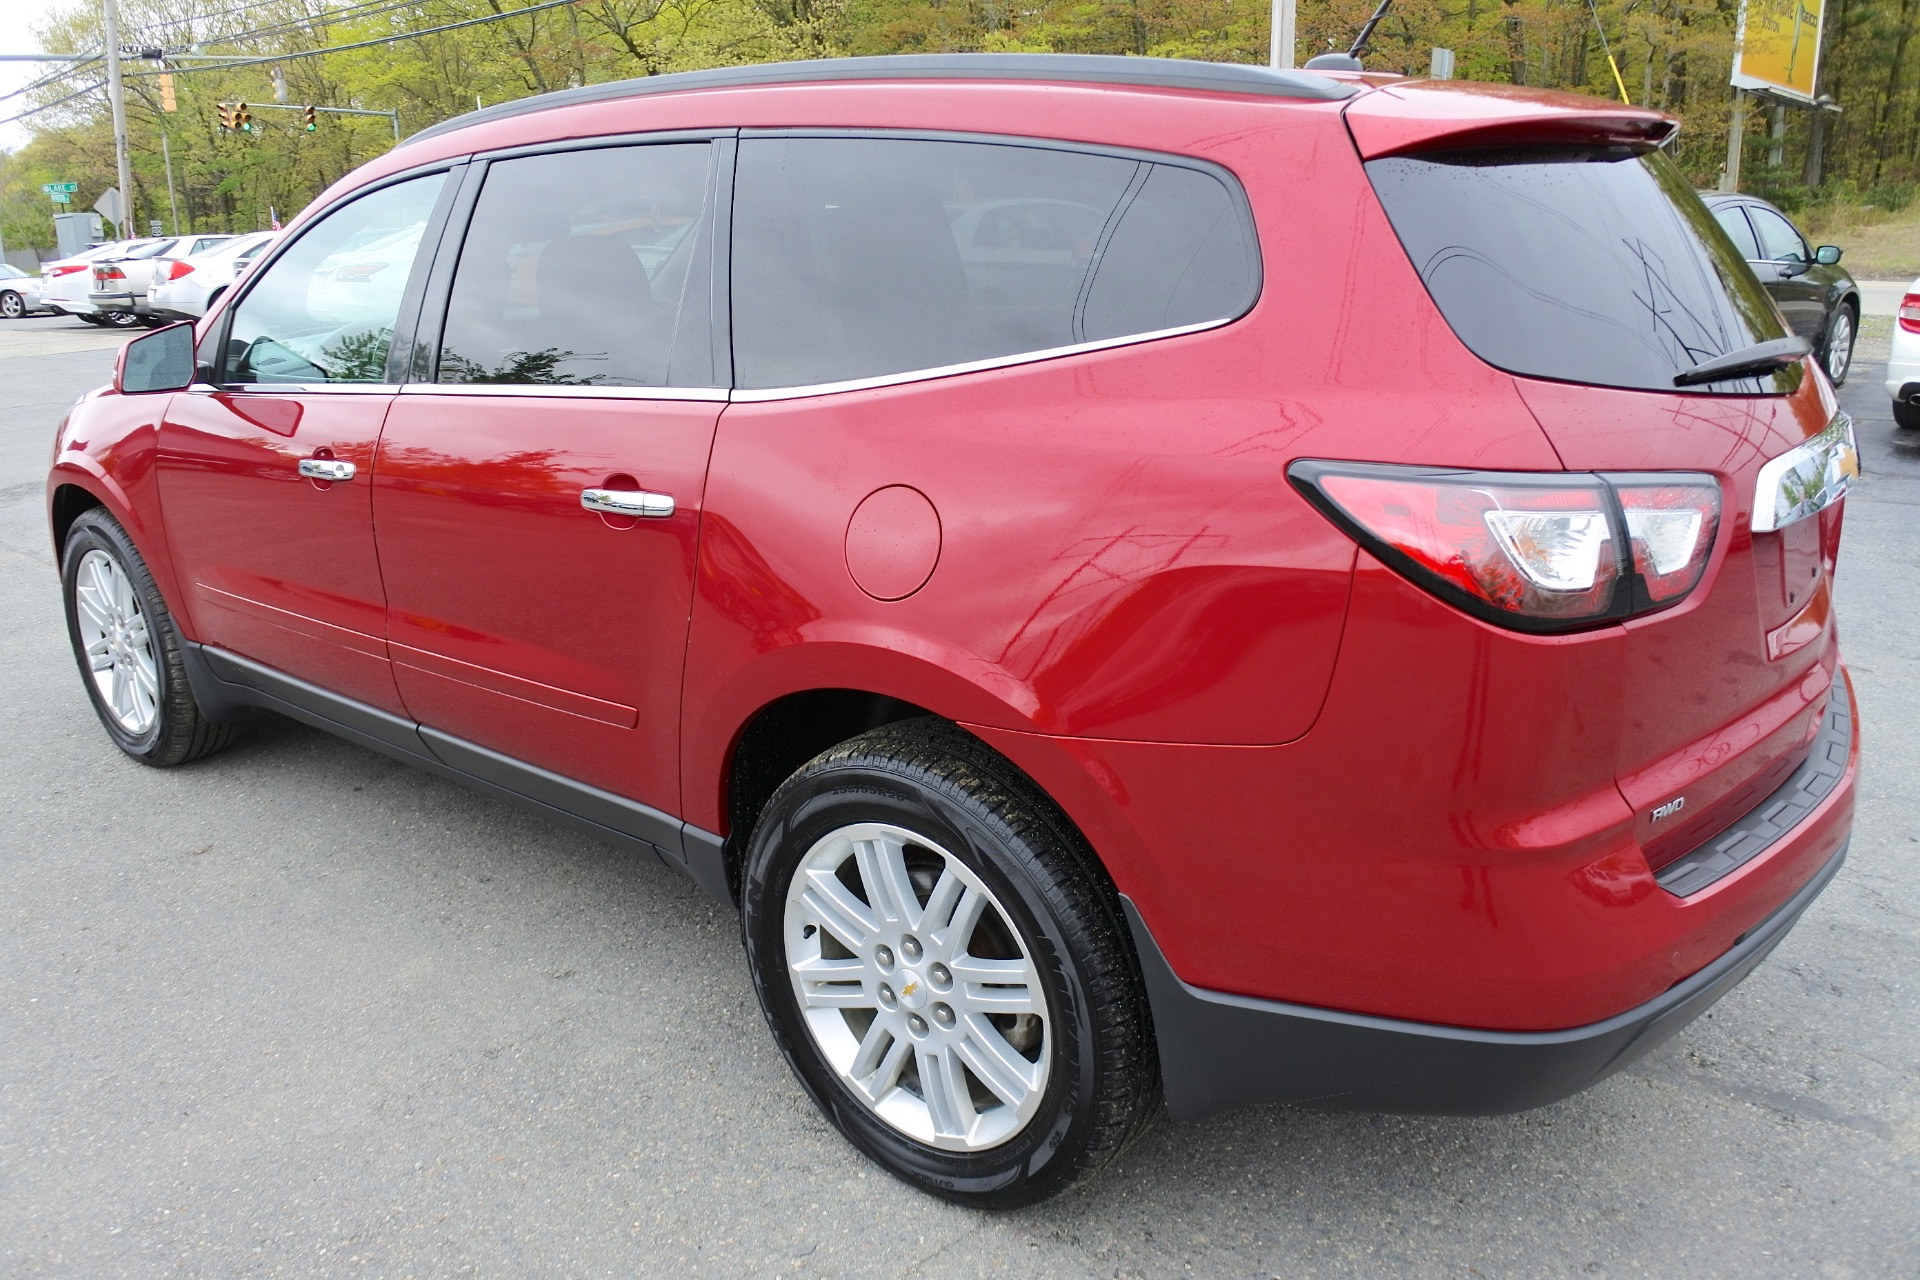 Used 2013 Chevrolet Traverse AWD 4dr LT w/1LT Used 2013 Chevrolet Traverse AWD 4dr LT w/1LT for sale  at Metro West Motorcars LLC in Shrewsbury MA 3